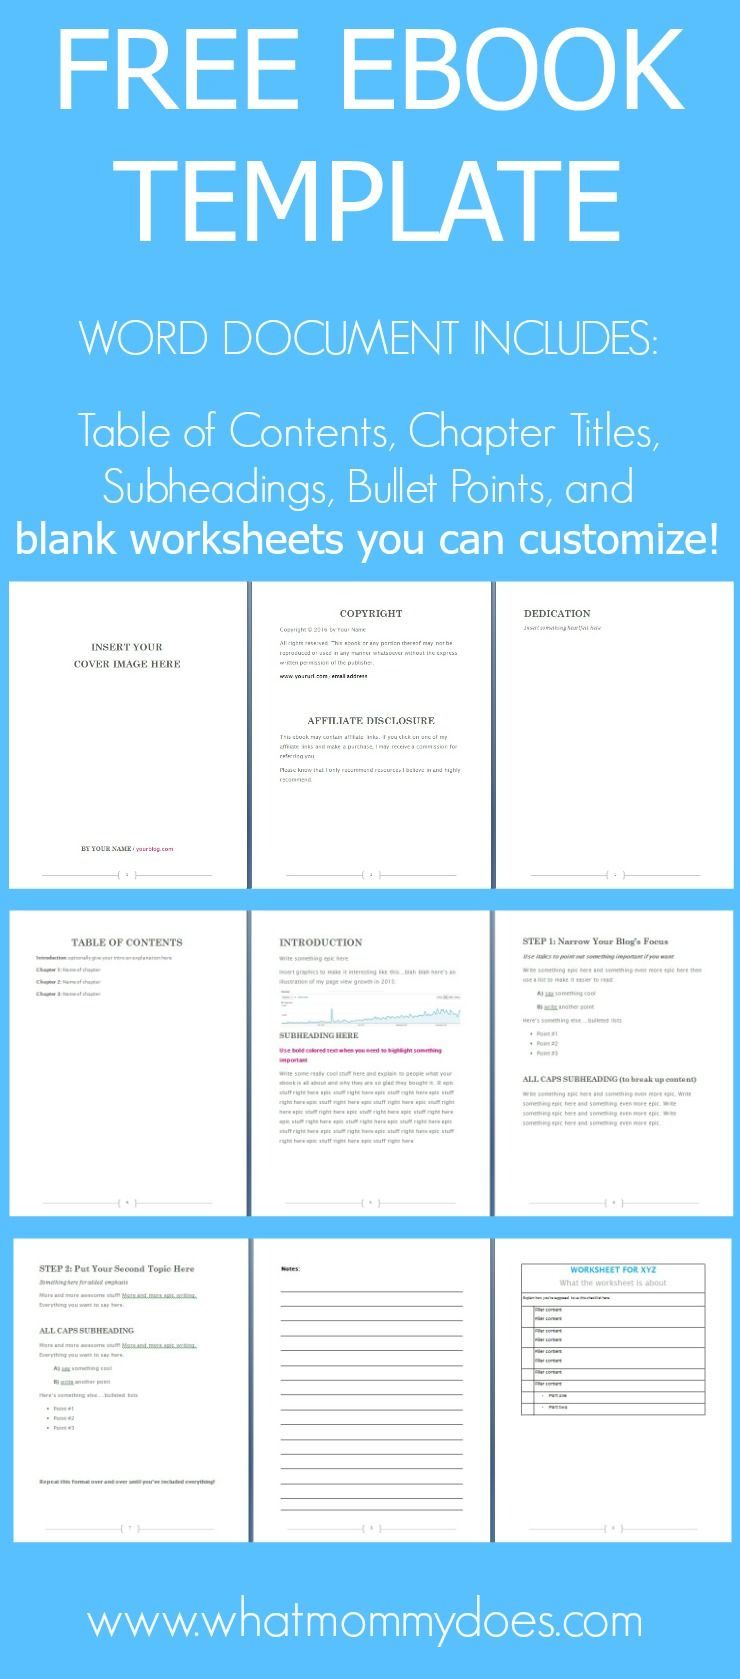 Free Ebook Template - Preformatted Word Document | Template, Free ...